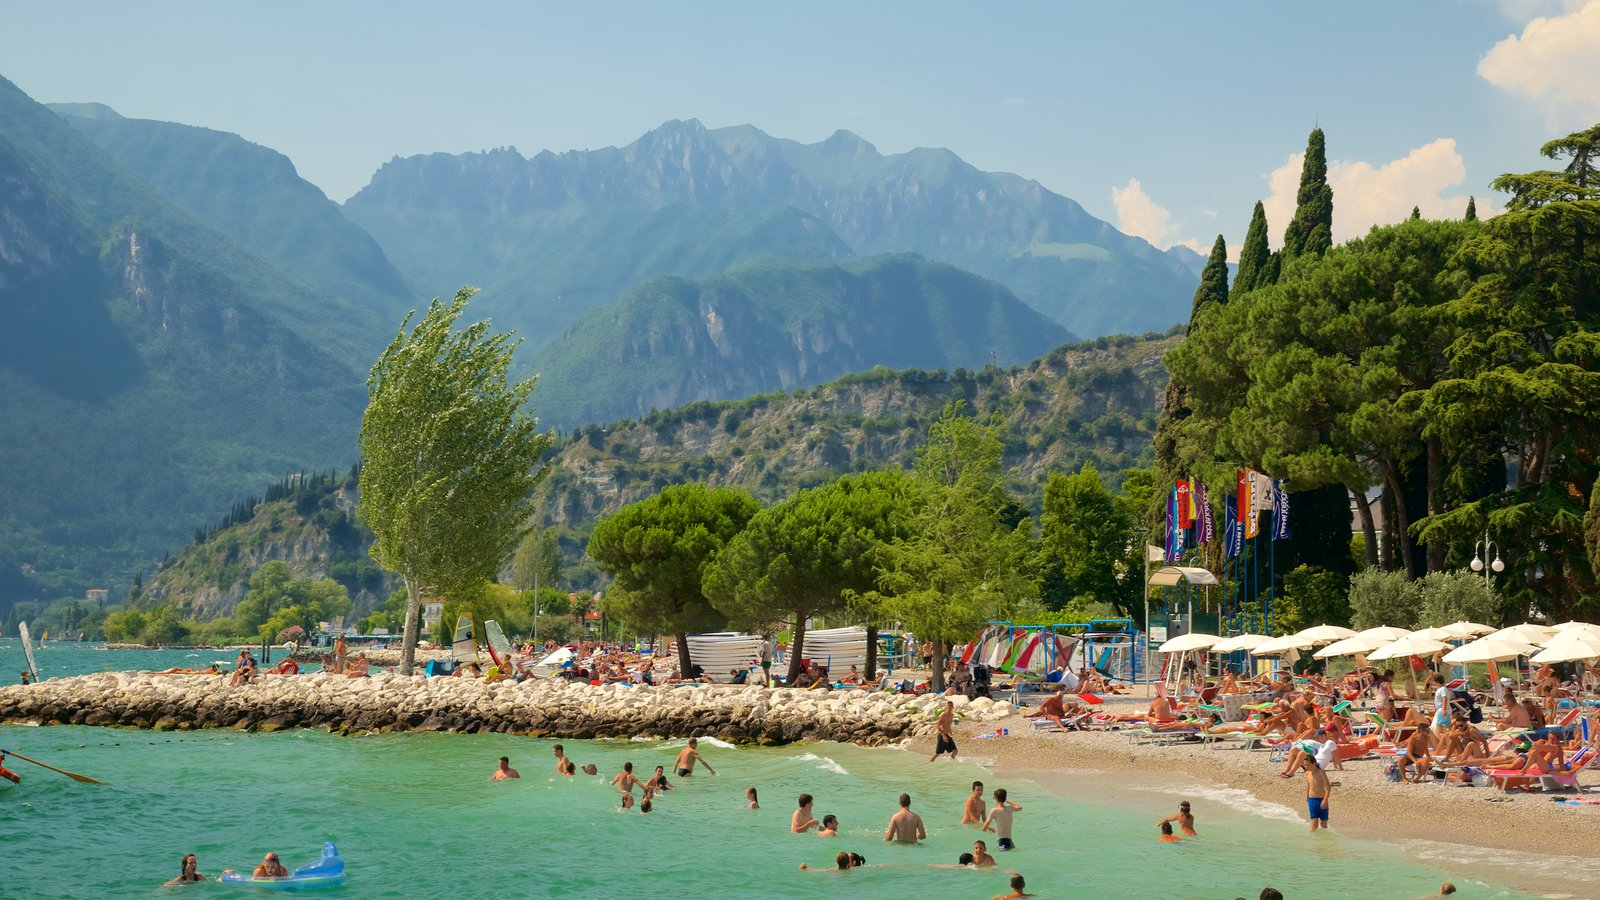 Nago-Torbole showing a beach, a coastal town and mountains